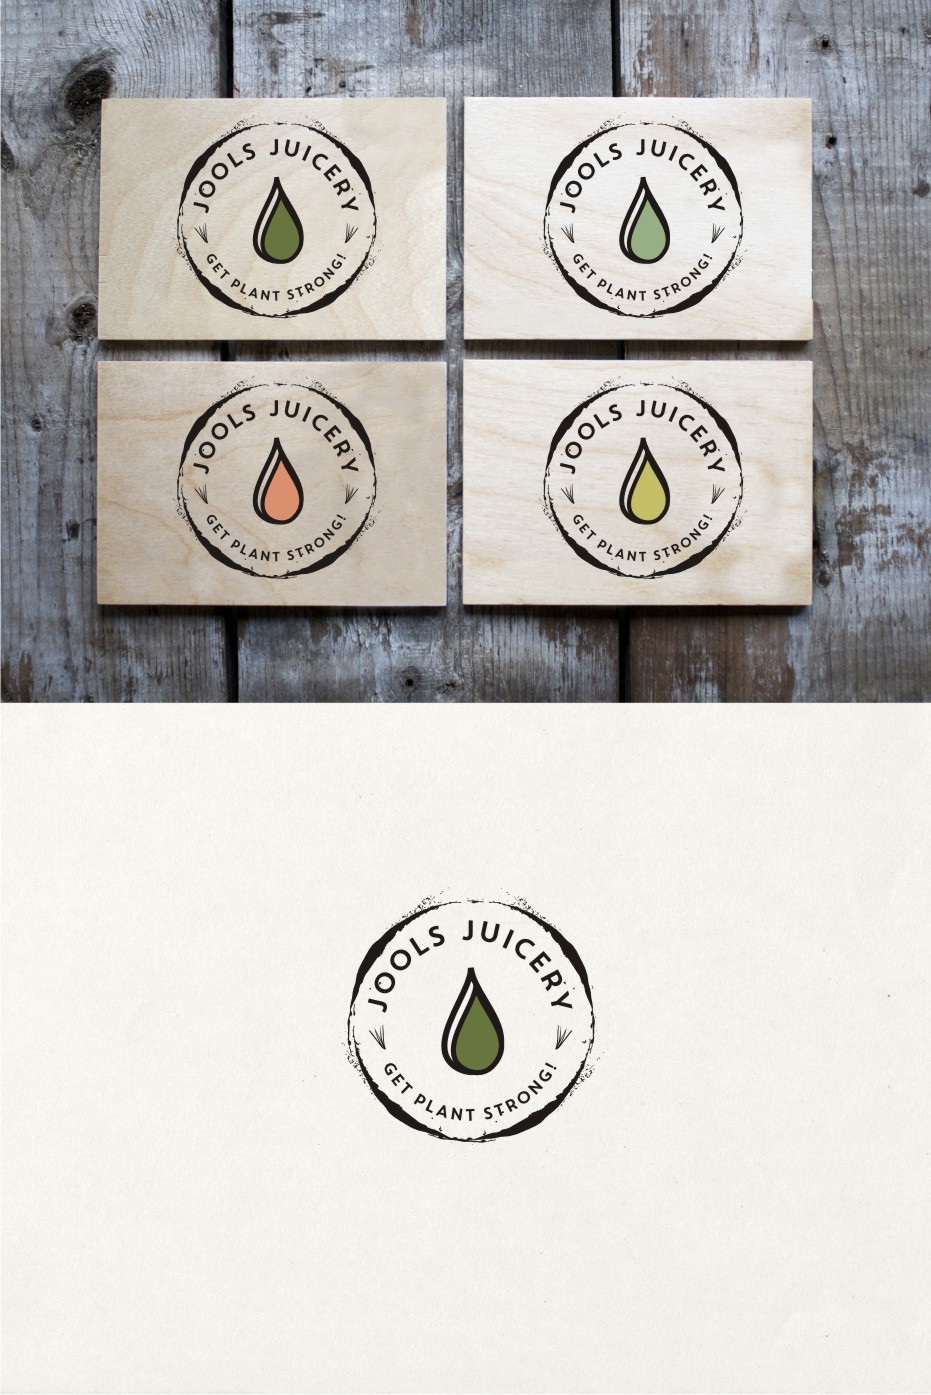 Create an original modern with a natural touch logo for a raw organicjuice Co. Winner to receive a lot more work from us